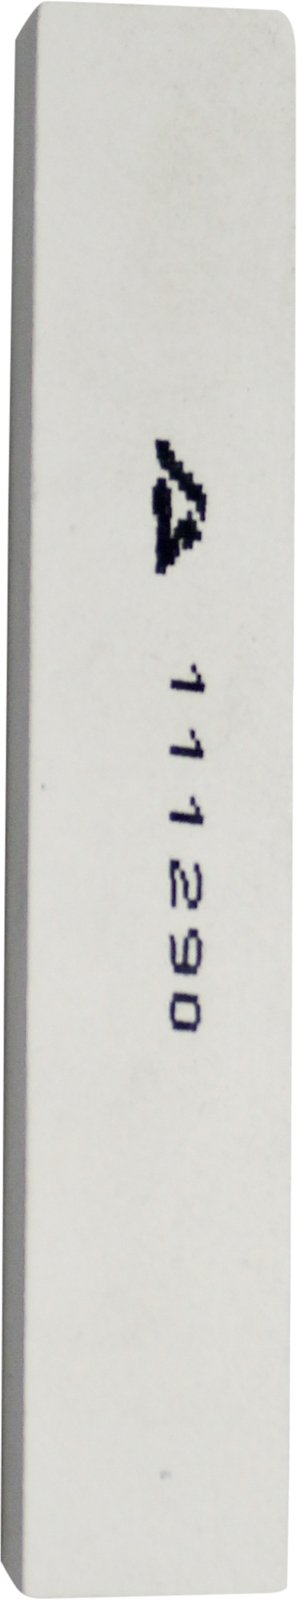 Dressing Stick for 5LC and 10LC, 3x0.5x0.5in